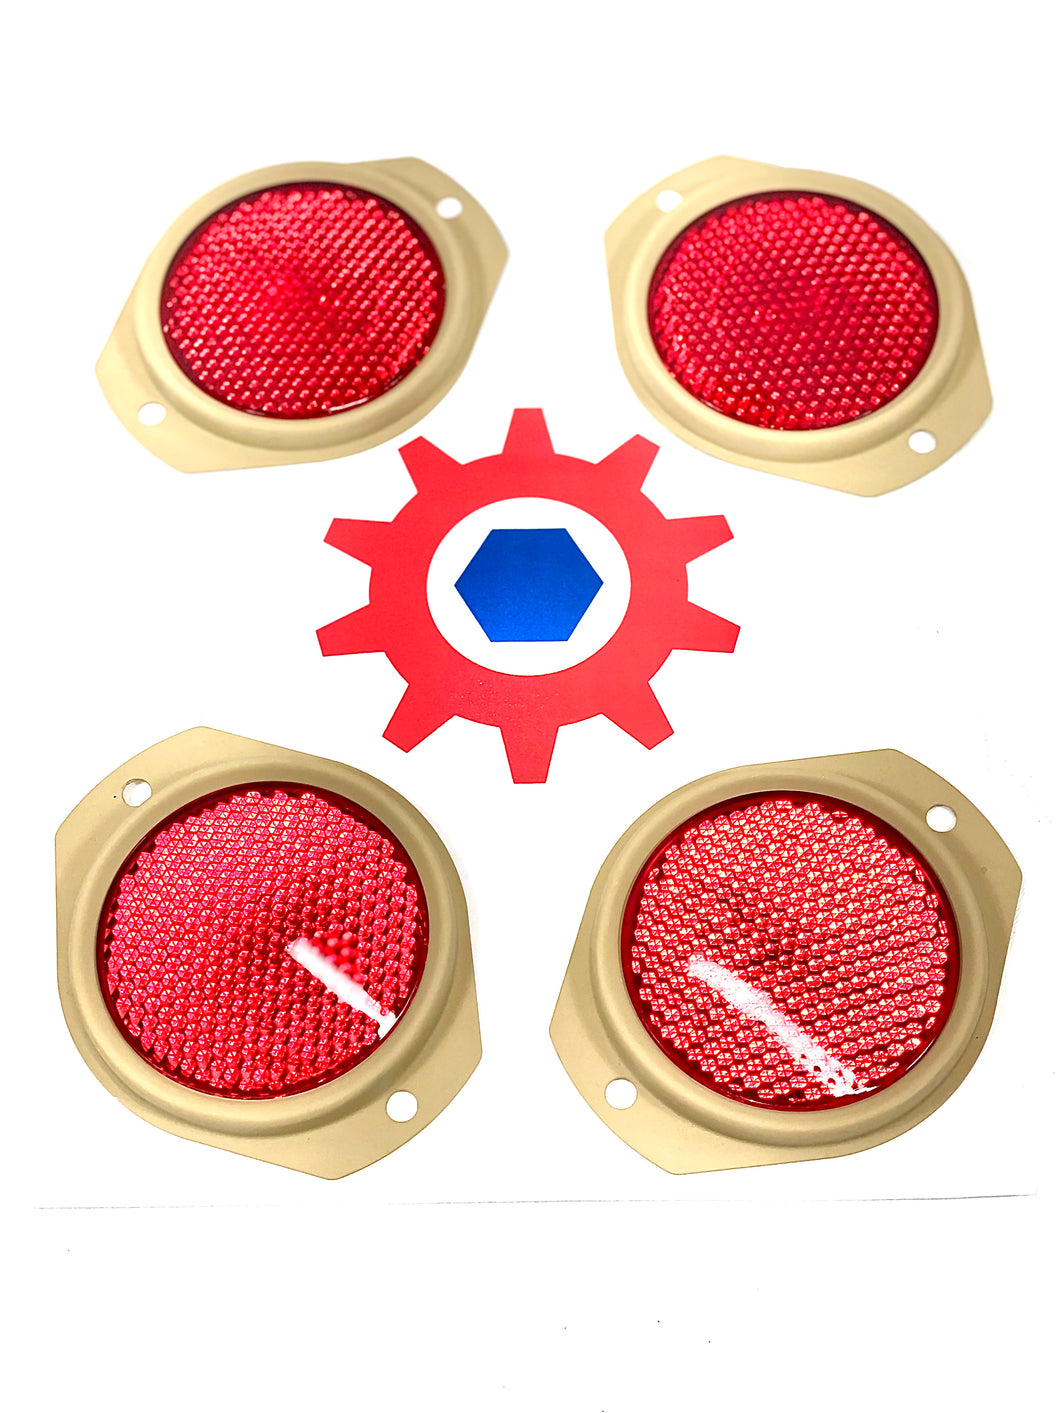 4 each - Reflector-RED (686 TAN FRAME); M998 HUMVEE ; 12342500-1 9905-01-478-4267